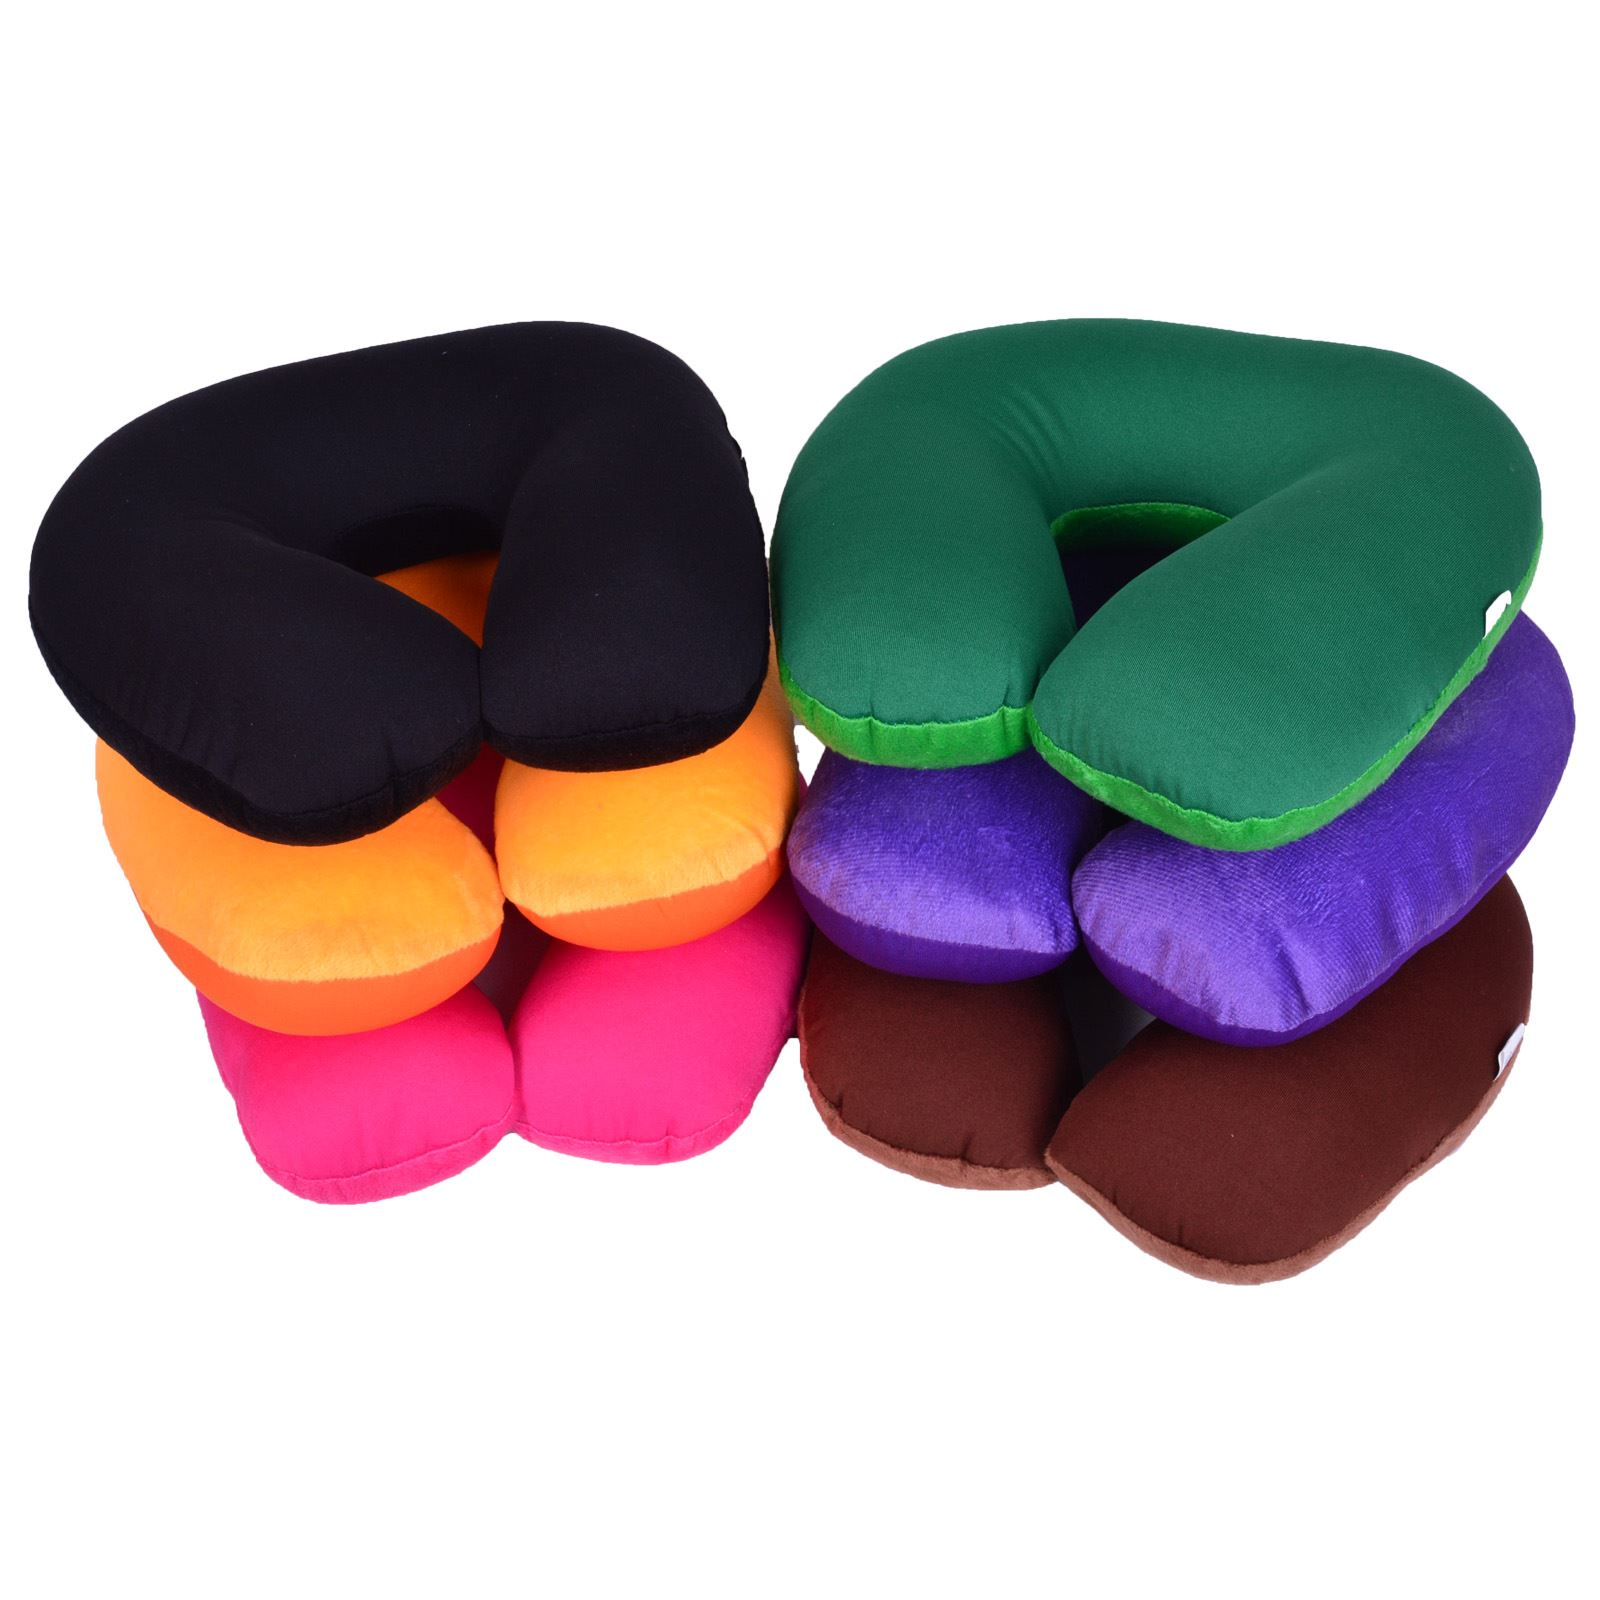 Super Soft Travel Neck Cushion Pillow Microbead Polyester Camping Holiday Sleep